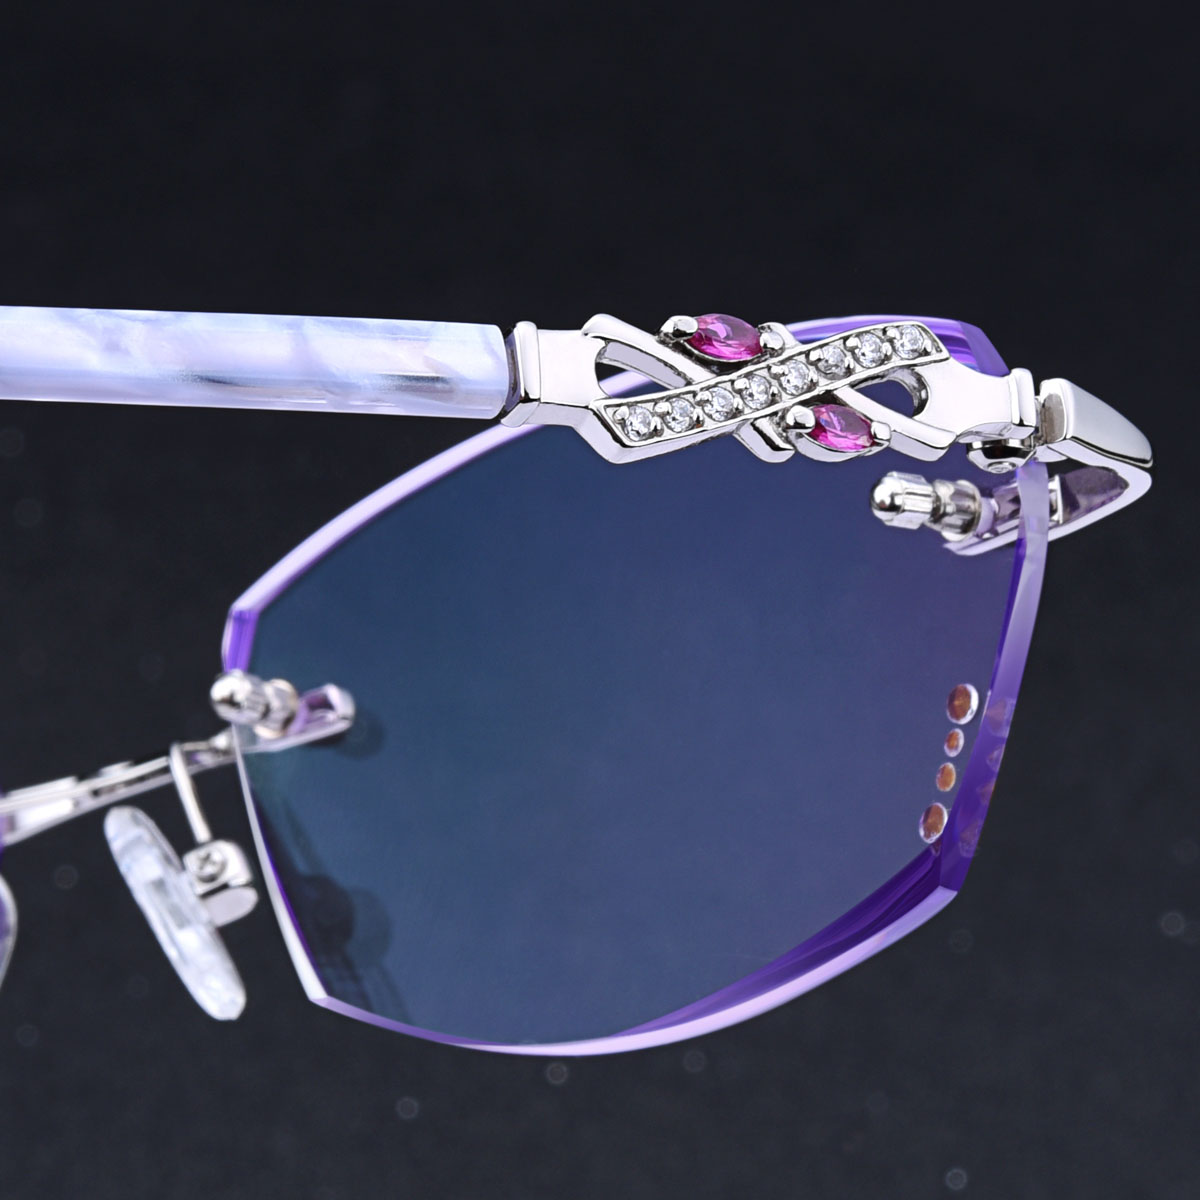 314c87c59141 Get Quotations · Finished chromotropic trimming rimless glasses female  ultralight rimless glasses myopia female elegant glasses frame free shipping